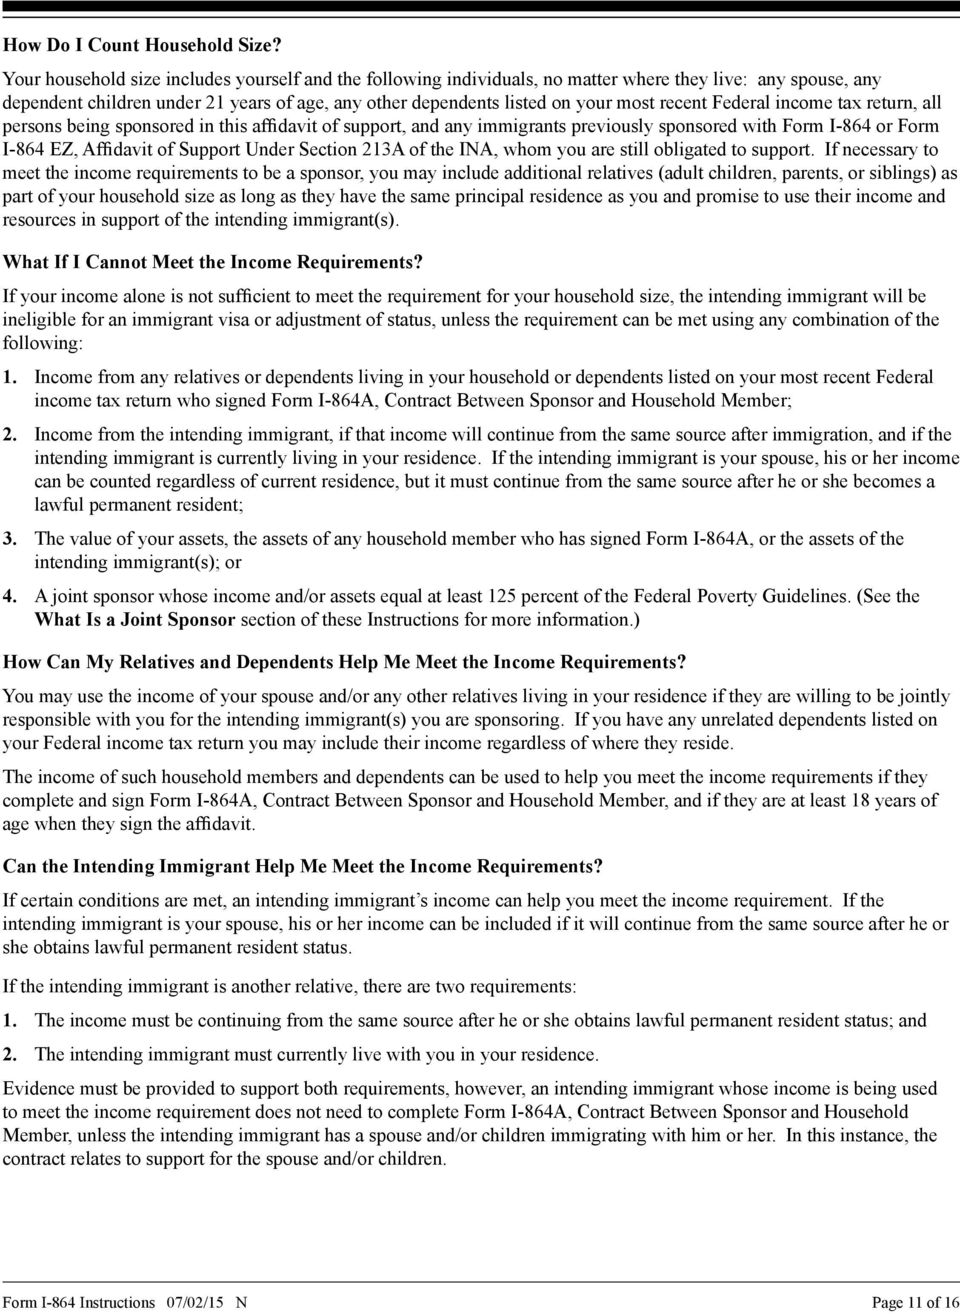 Instructions for Affidavit of Support Under Section 213A of the INA